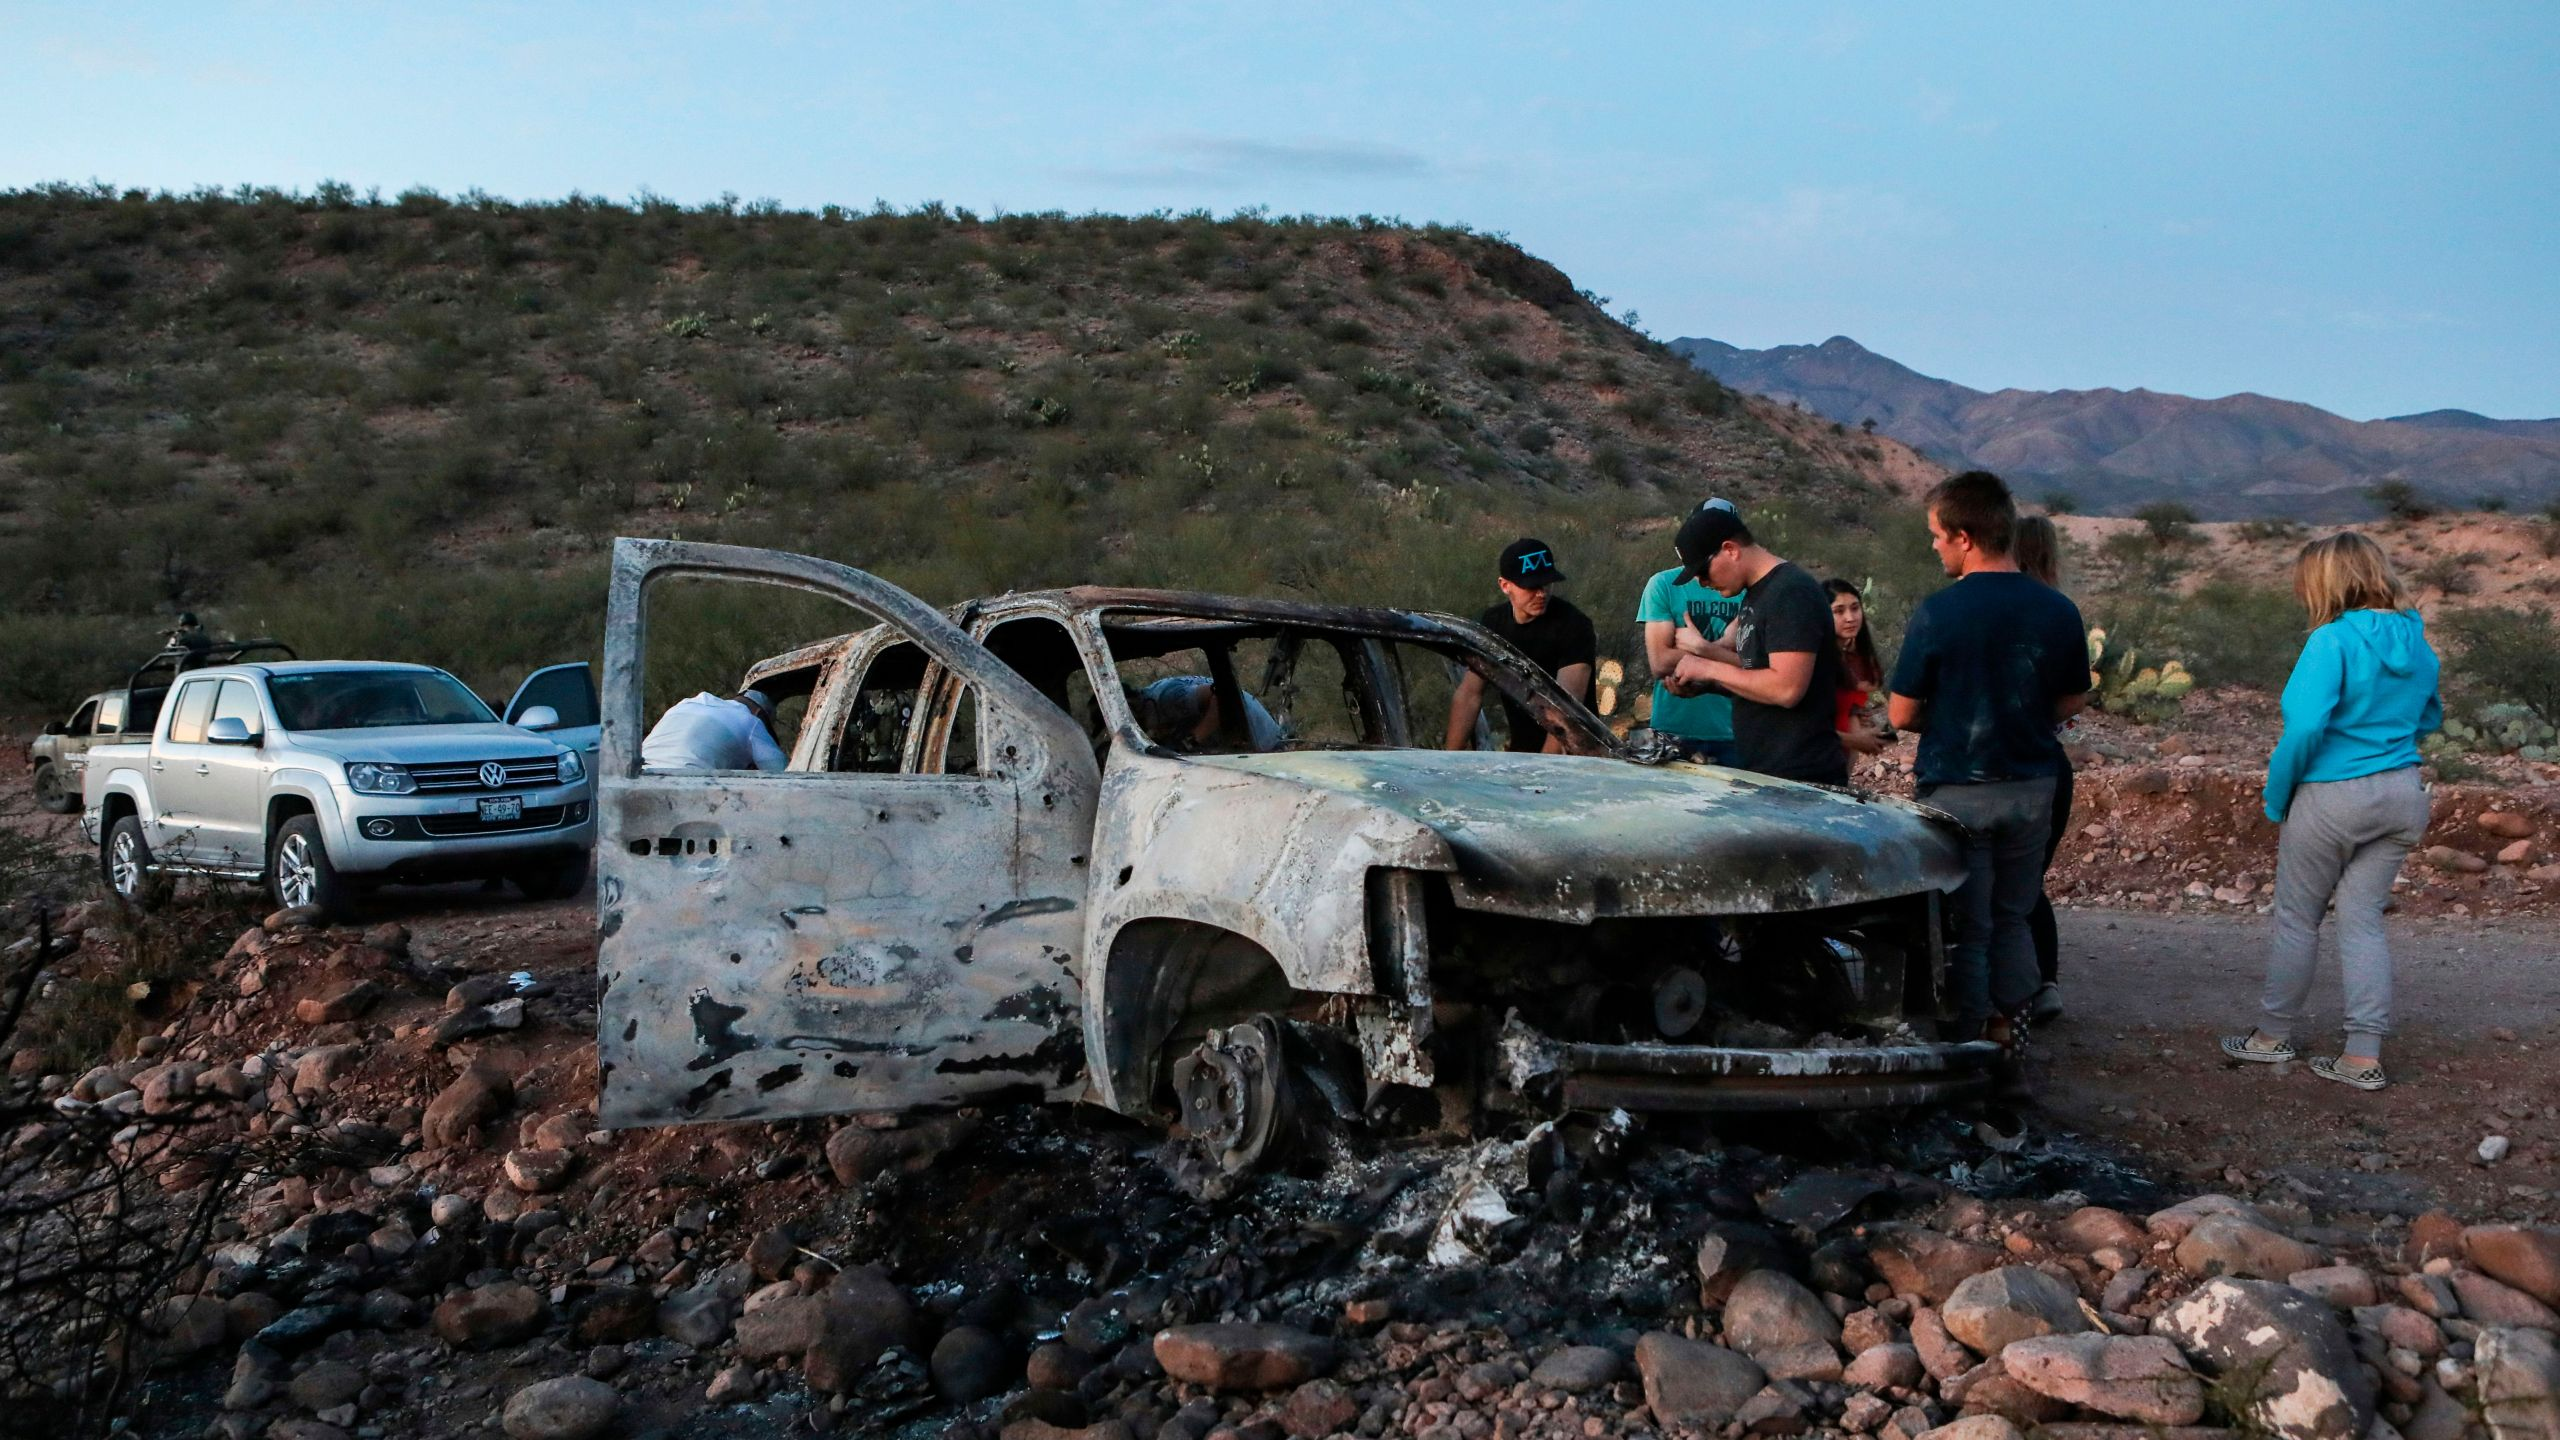 Members of the Lebaron family mourn as they look at the burned car where part of the nine murdered members of their family were killed and burned during an ambush in Bavispe, Sonora mountains, Mexico, on Nov.5, 2019. (Credit: HERIKA MARTINEZ/AFP via Getty Images)